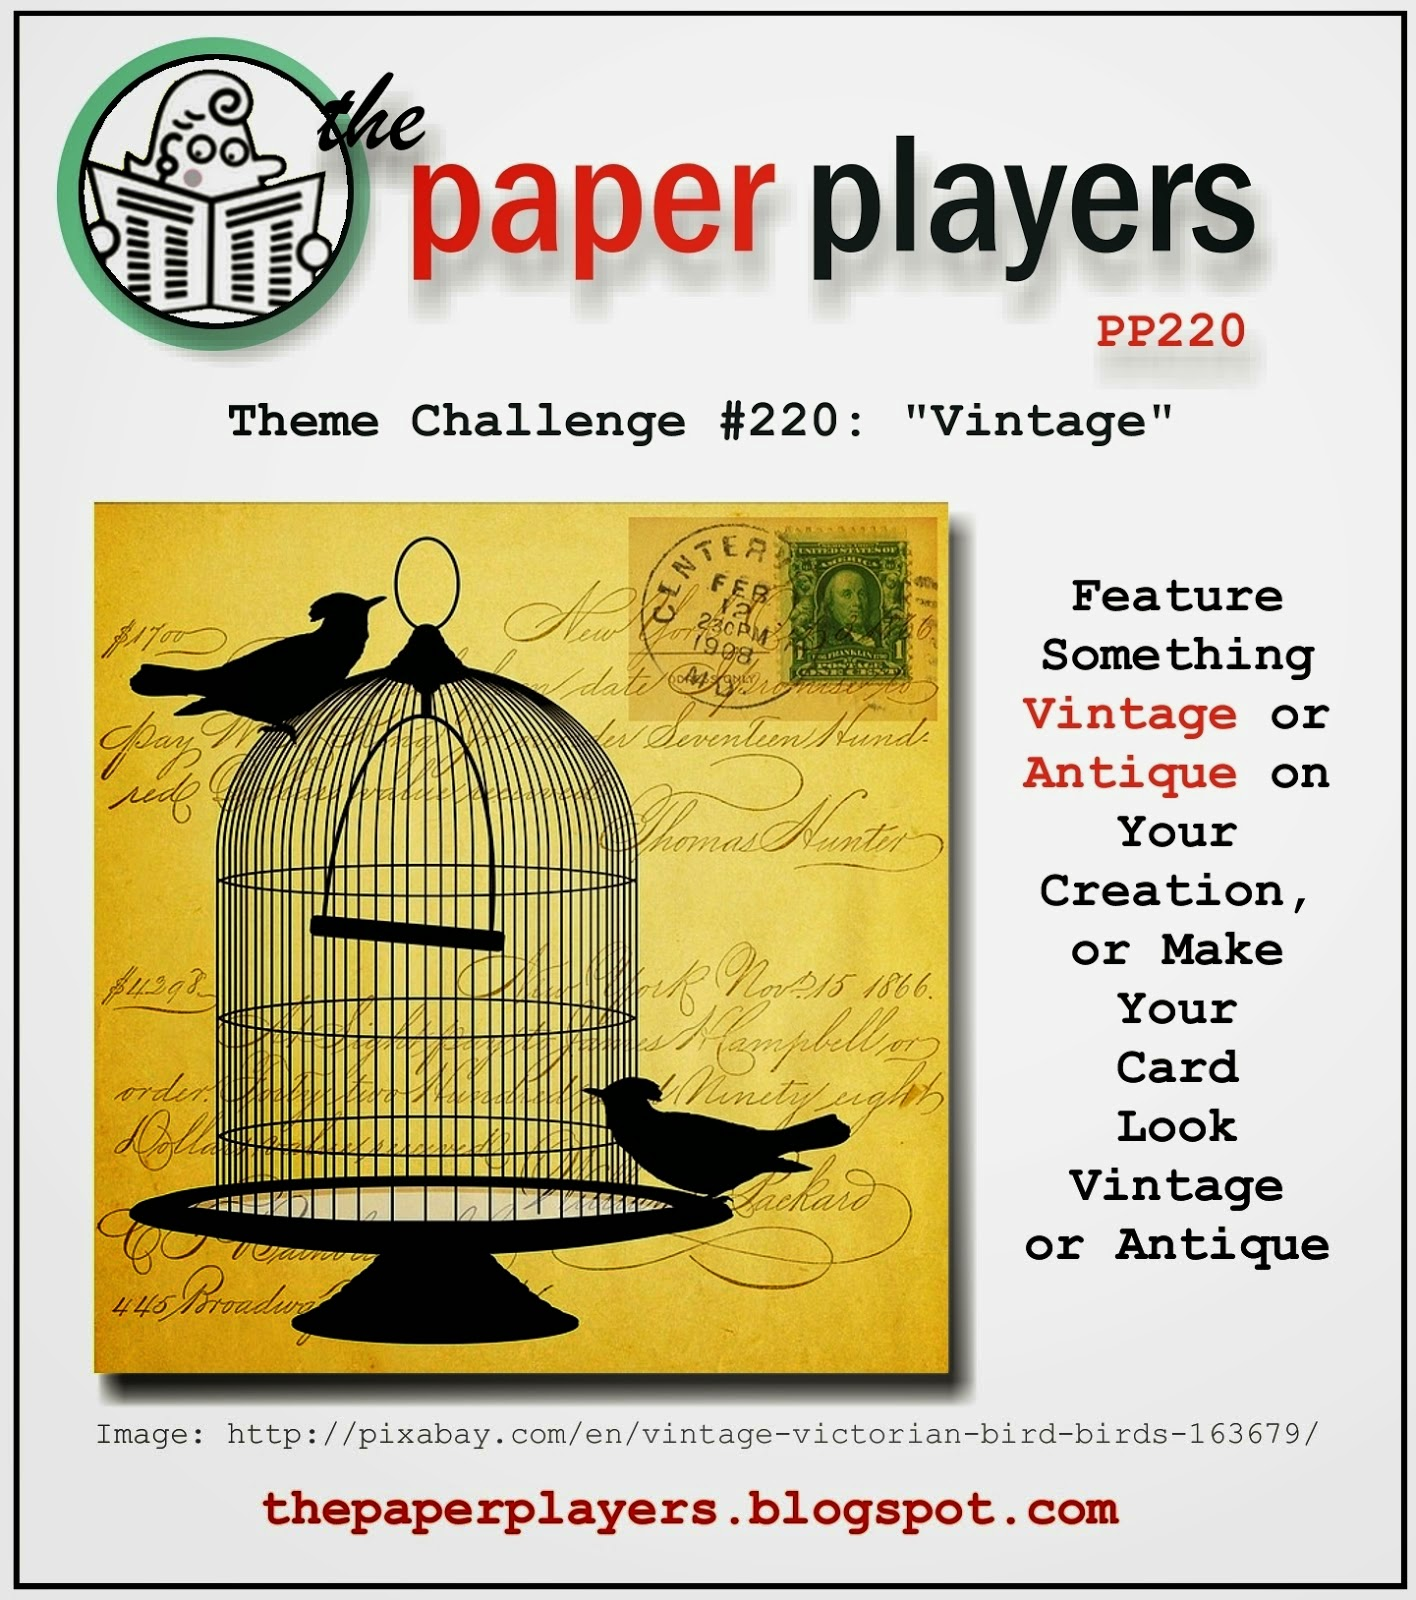 http://thepaperplayers.blogspot.co.uk/2014/11/paper-players-220-theme-challenge-from.html